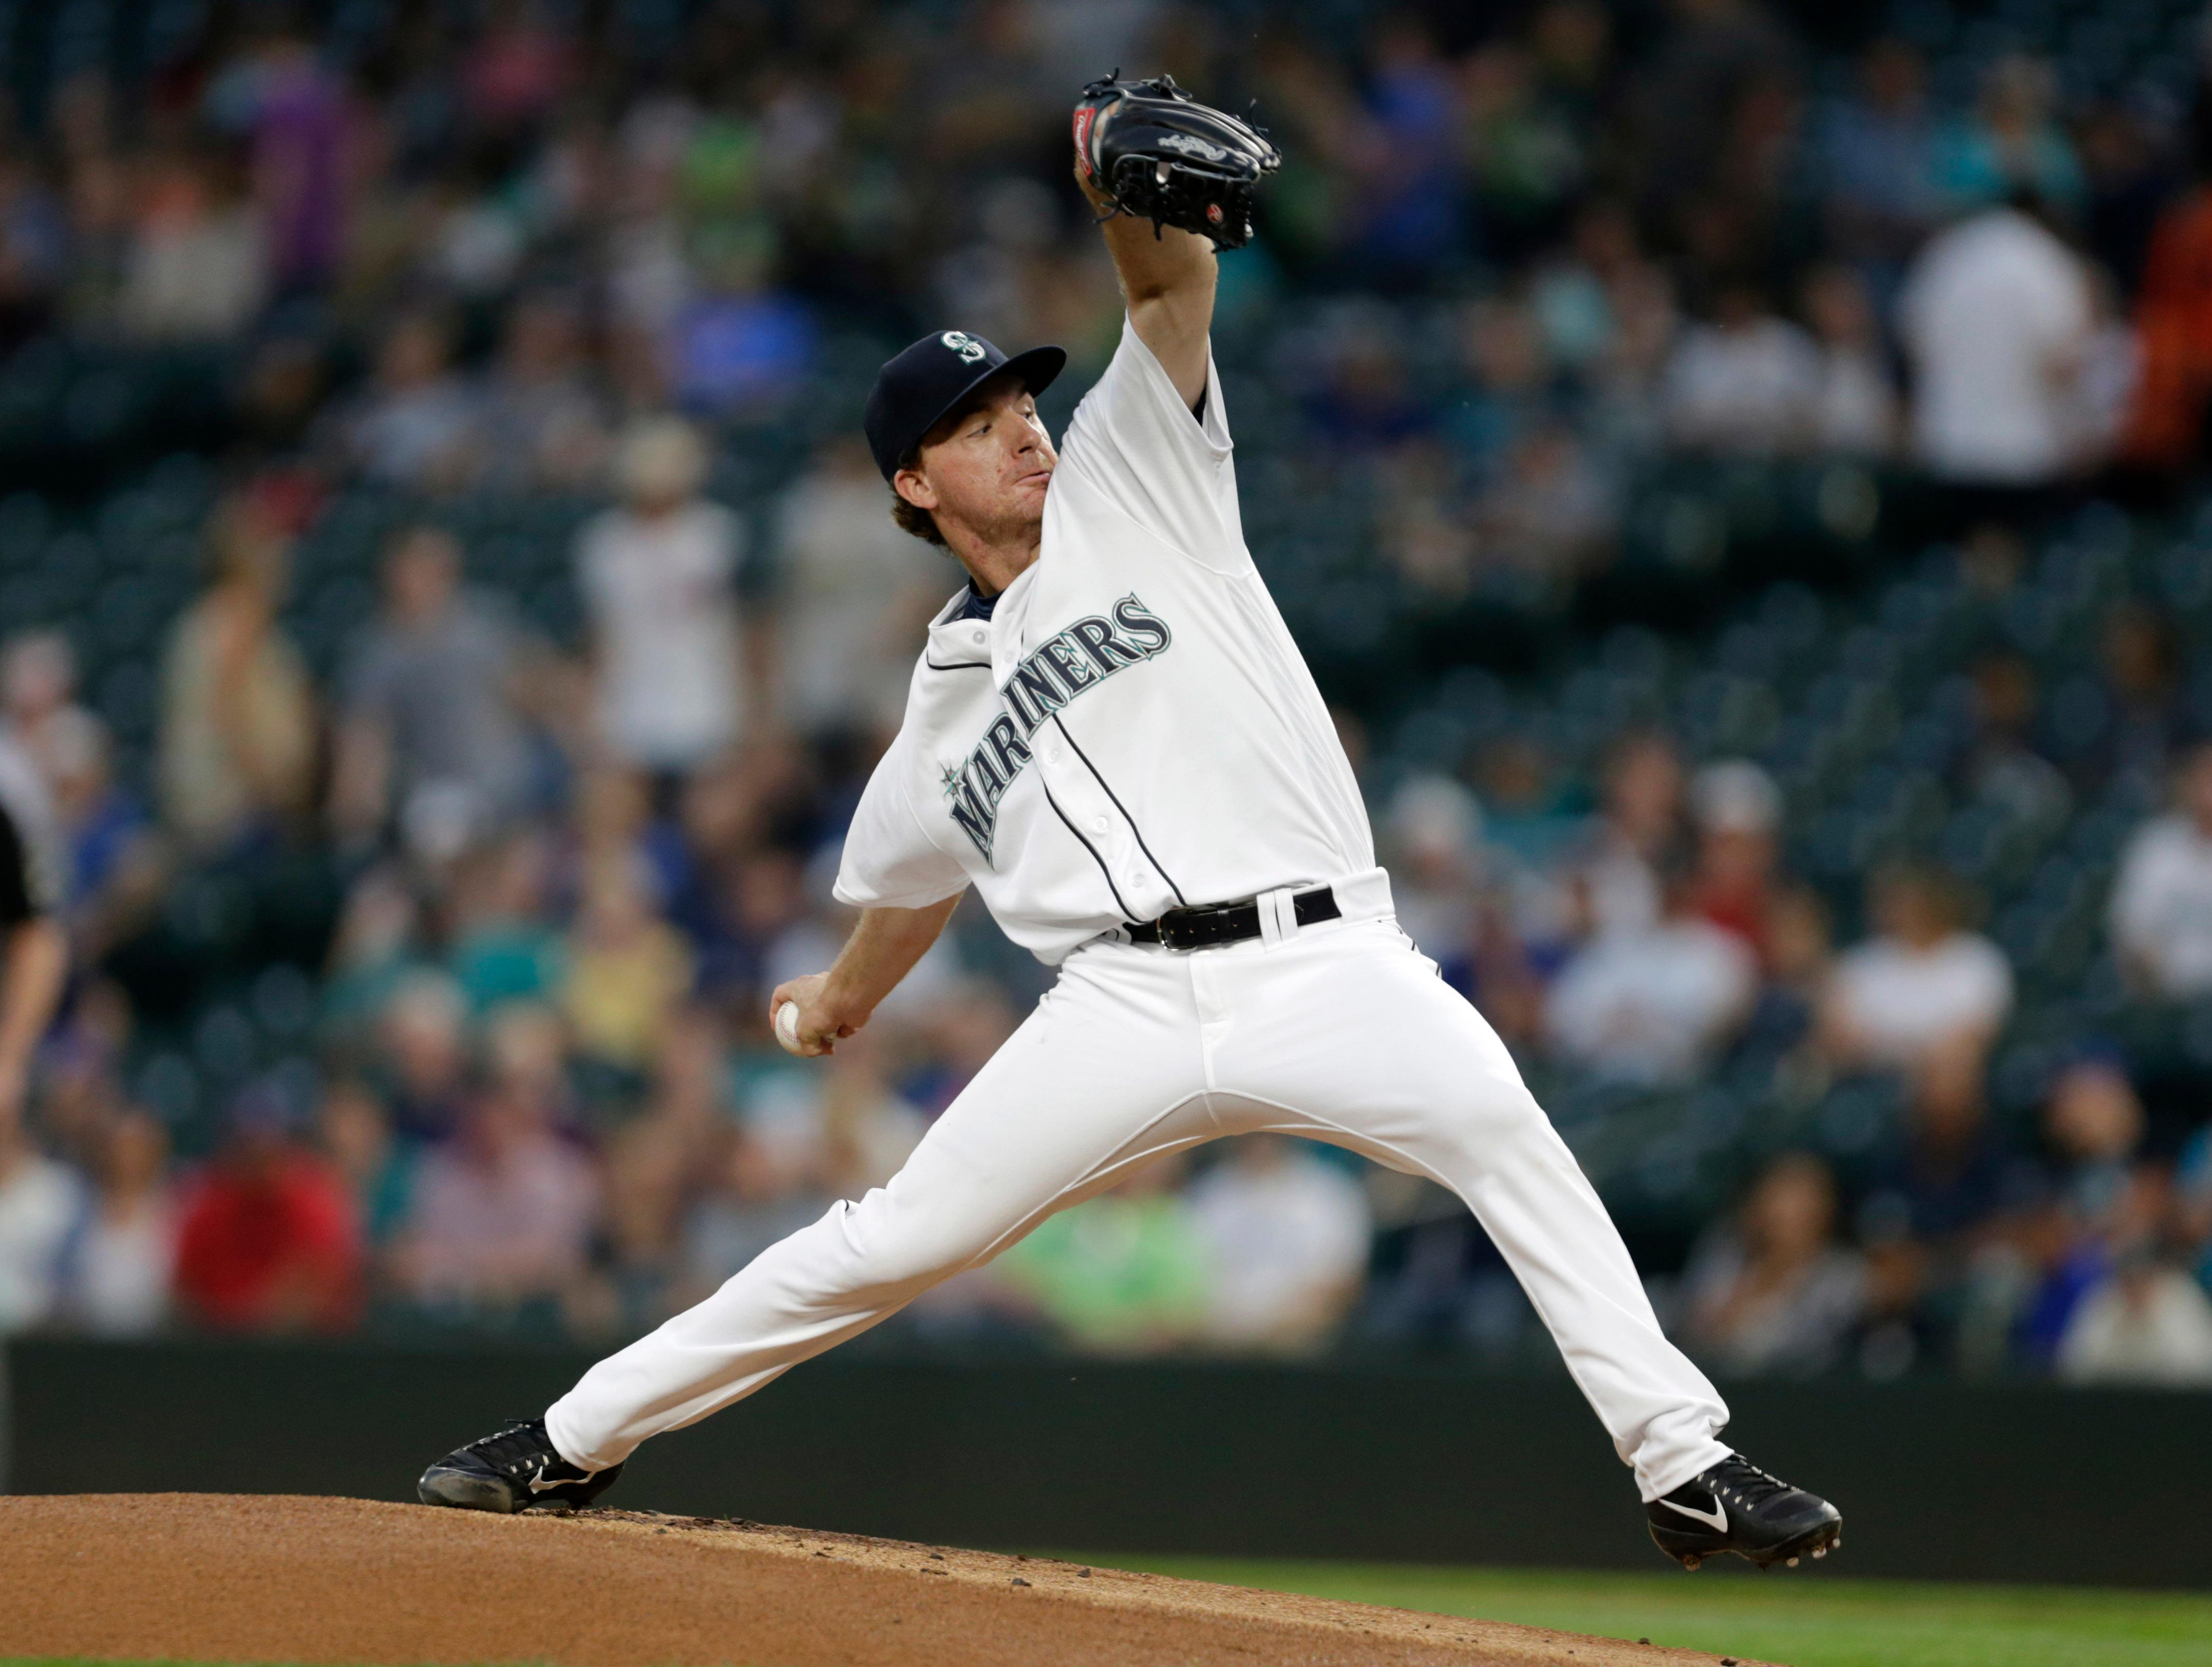 Seattle Mariners starting pitcher Andrew Moore works against the Houston Astros during the first inning of a baseball game Wednesday, Sept. 6, 2017, in Seattle. (AP Photo/John Froschauer)